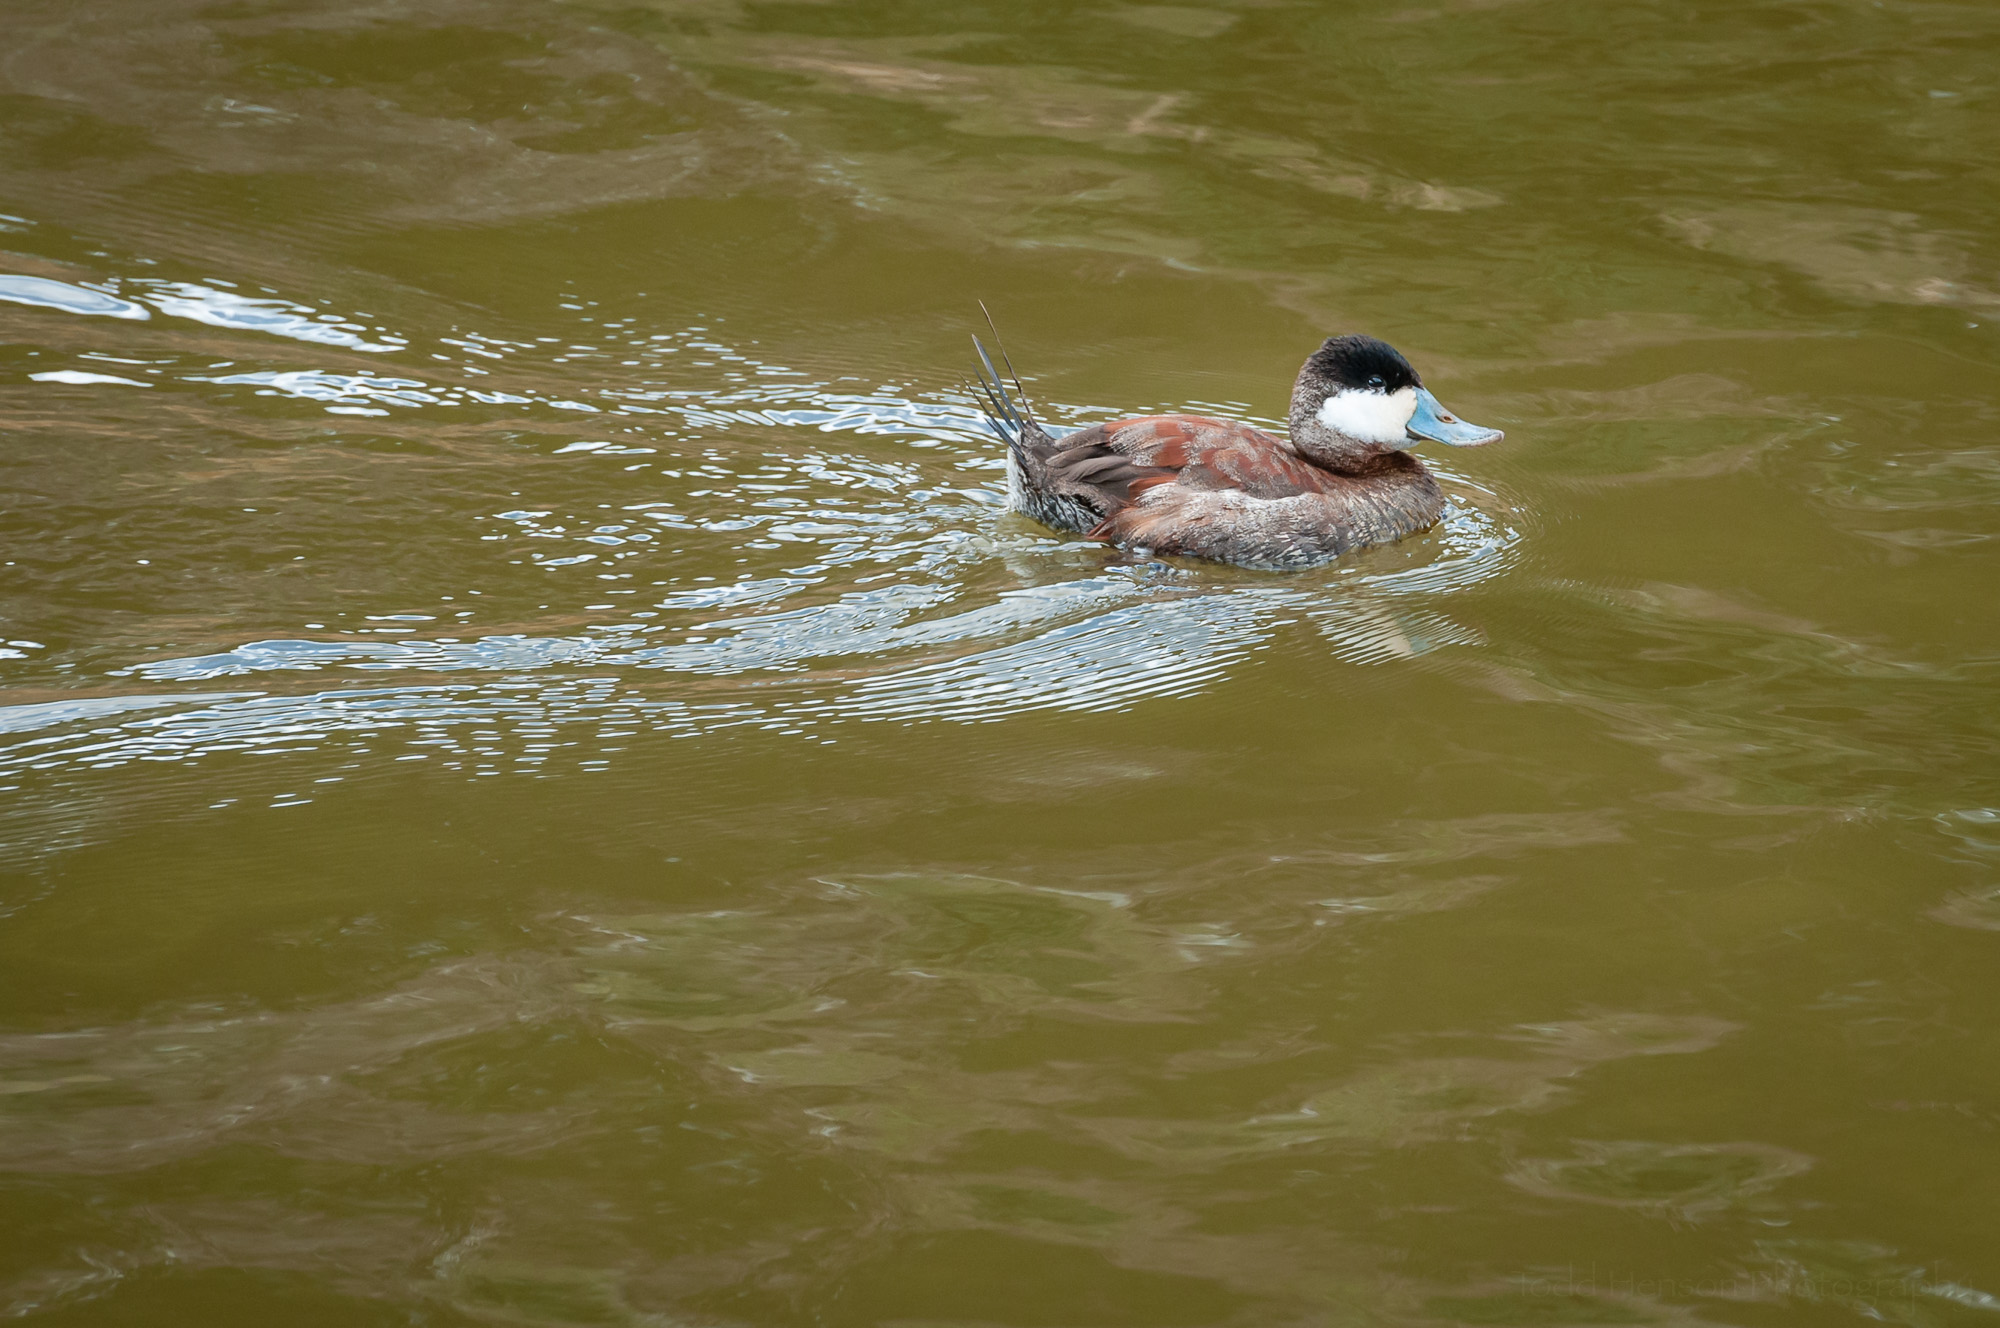 Male Ruddy Duck swimming in an inlet off Popes Creek.